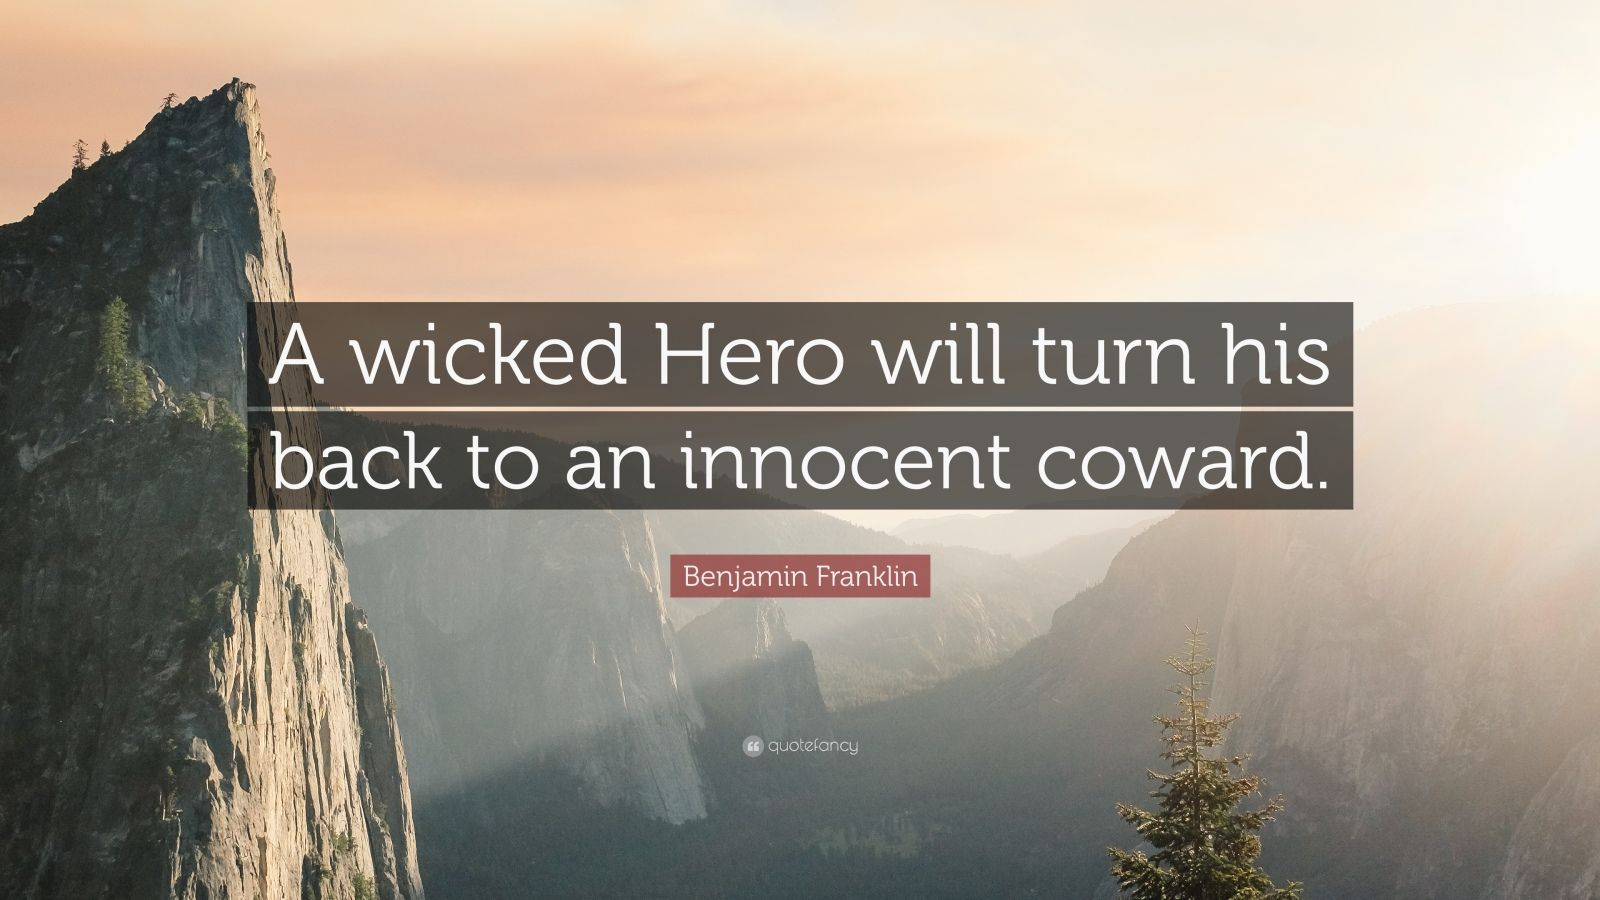 """Benjamin Franklin Quote: """"A wicked Hero will turn his back to an innocent coward."""""""